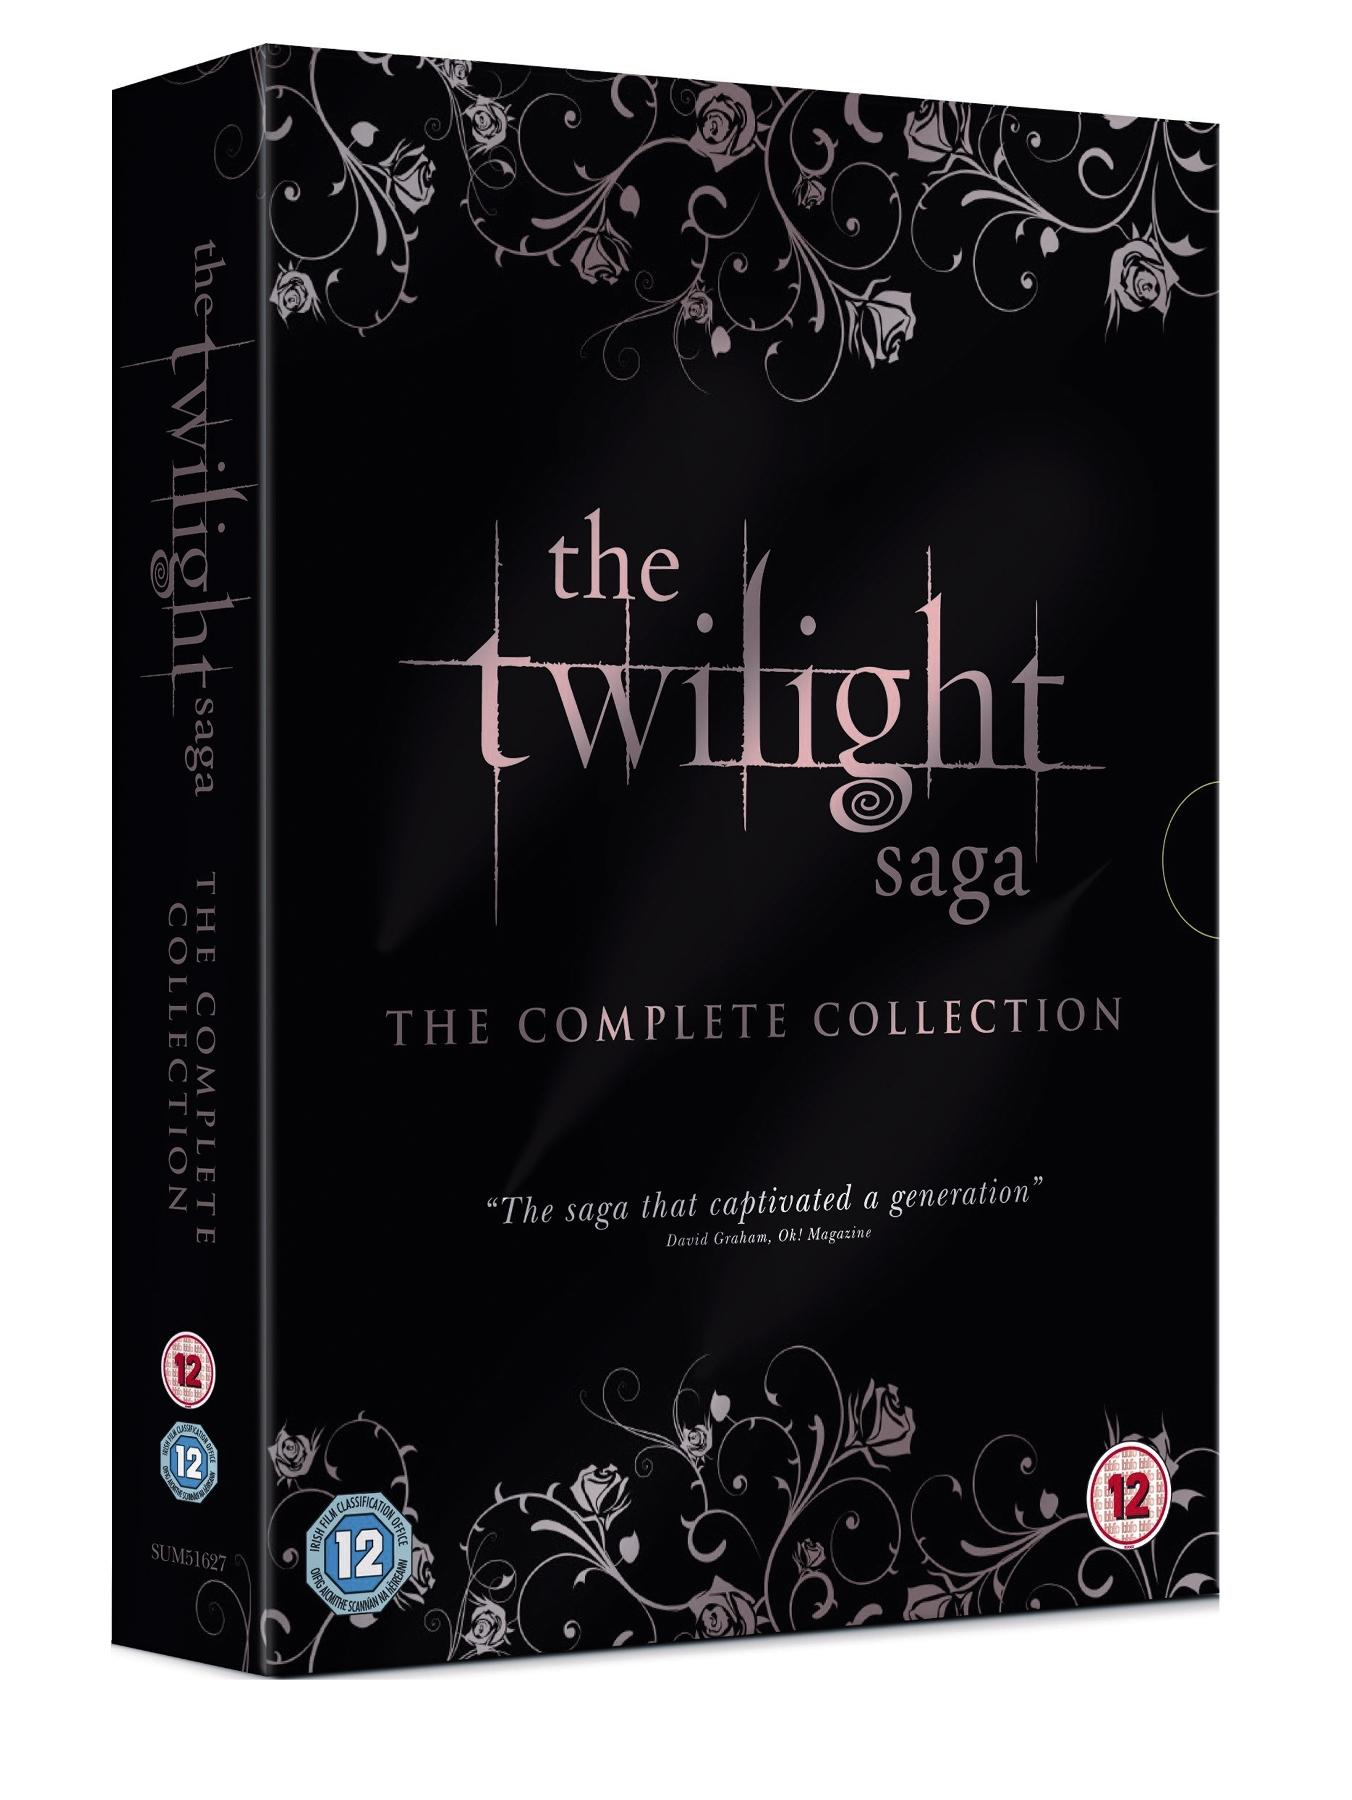 The Twilight Saga: The Complete Collection DVD at Very, from Littlewoods